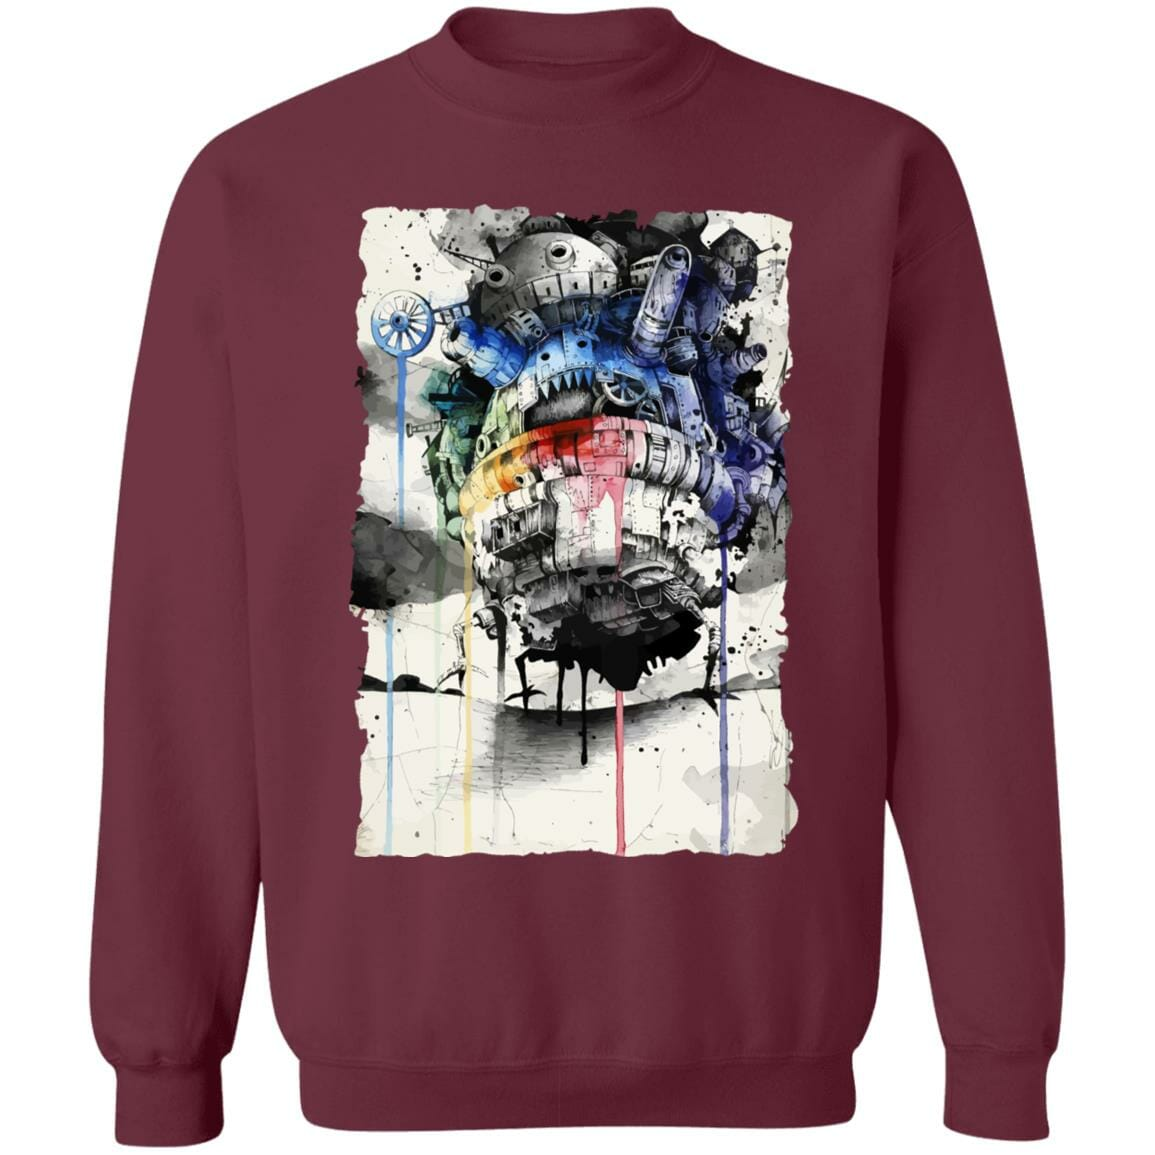 Howl's Moving Castle Impressionism Sweatshirt